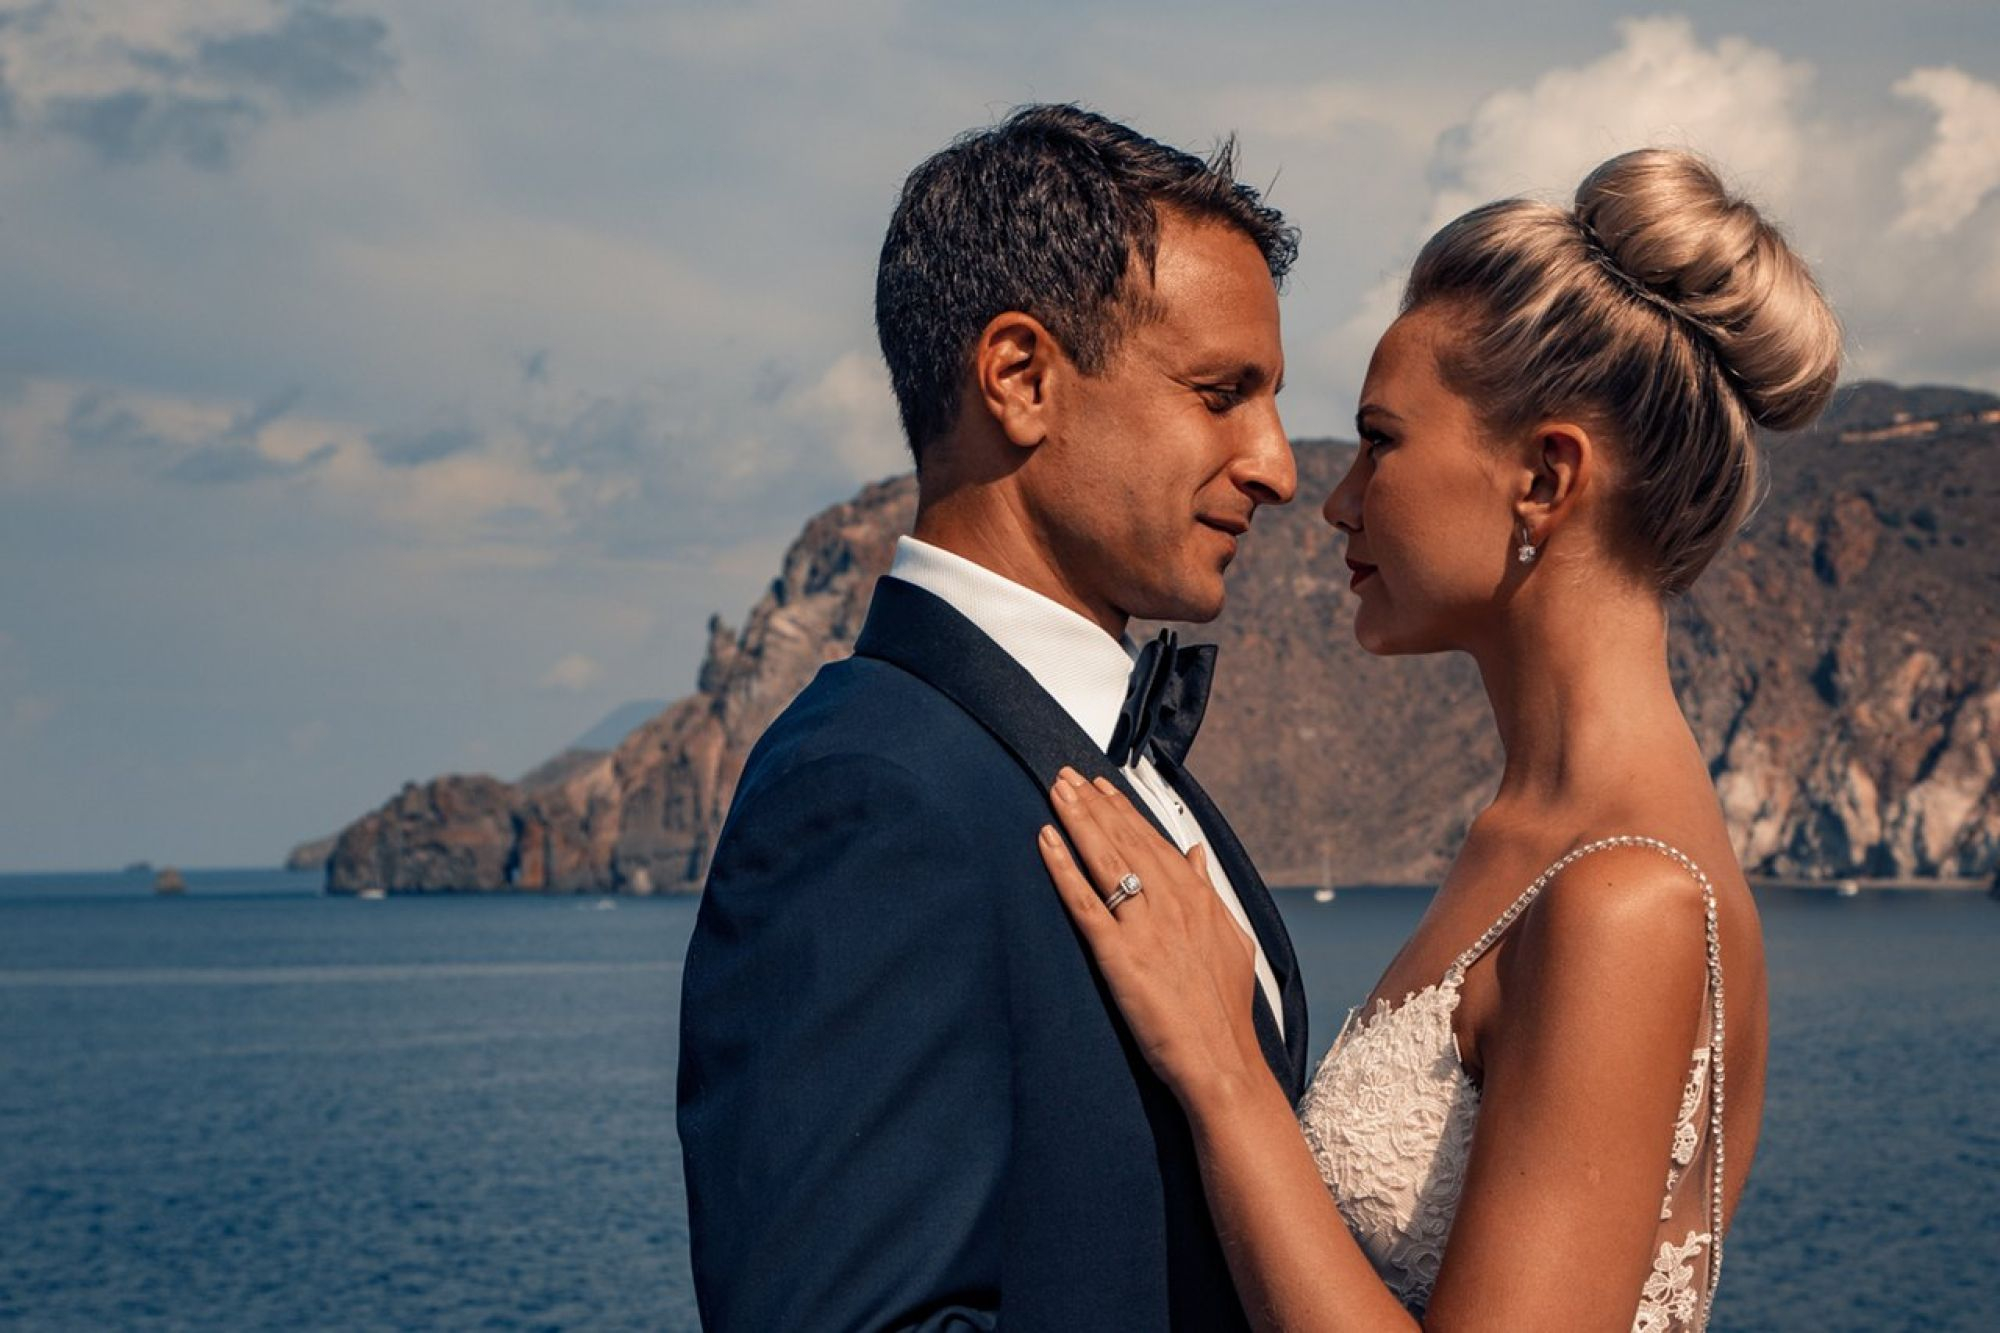 Click to enlarge image matrimonio-nikki-giuseppe-chiello-masterphotographer-sicily-wedding 2.jpg